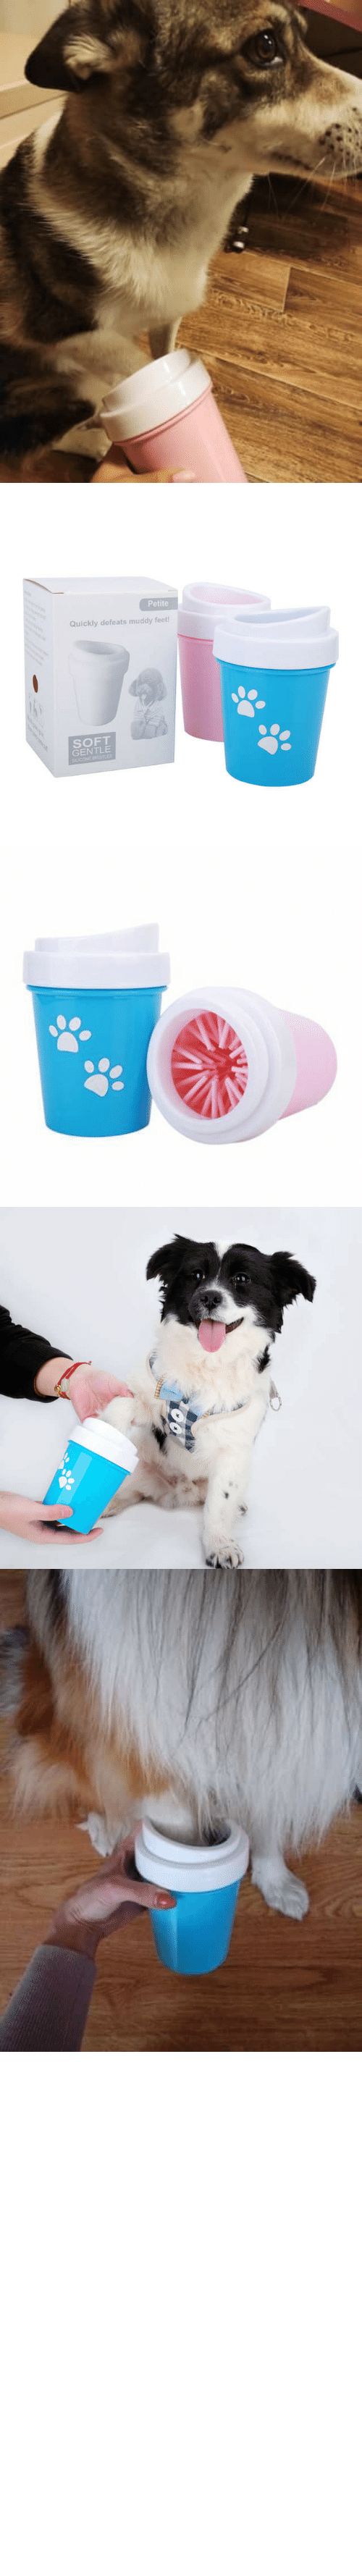 "Dirty: awesomage:   PAW CLEANER     Now your best friend can have all the muddy dirty fun he wants without bringing it all into your home or vehicle.    30% OFF plus Free Worldwide Shipping with coupon code ""CUDDLING""    All funds gathered will be donated for rescue dog shelters    SUPPORTS US NOW, ORDER AND SHARE OUR CAUSE!https://www.doggiemon.com/products/paw-cleaner"